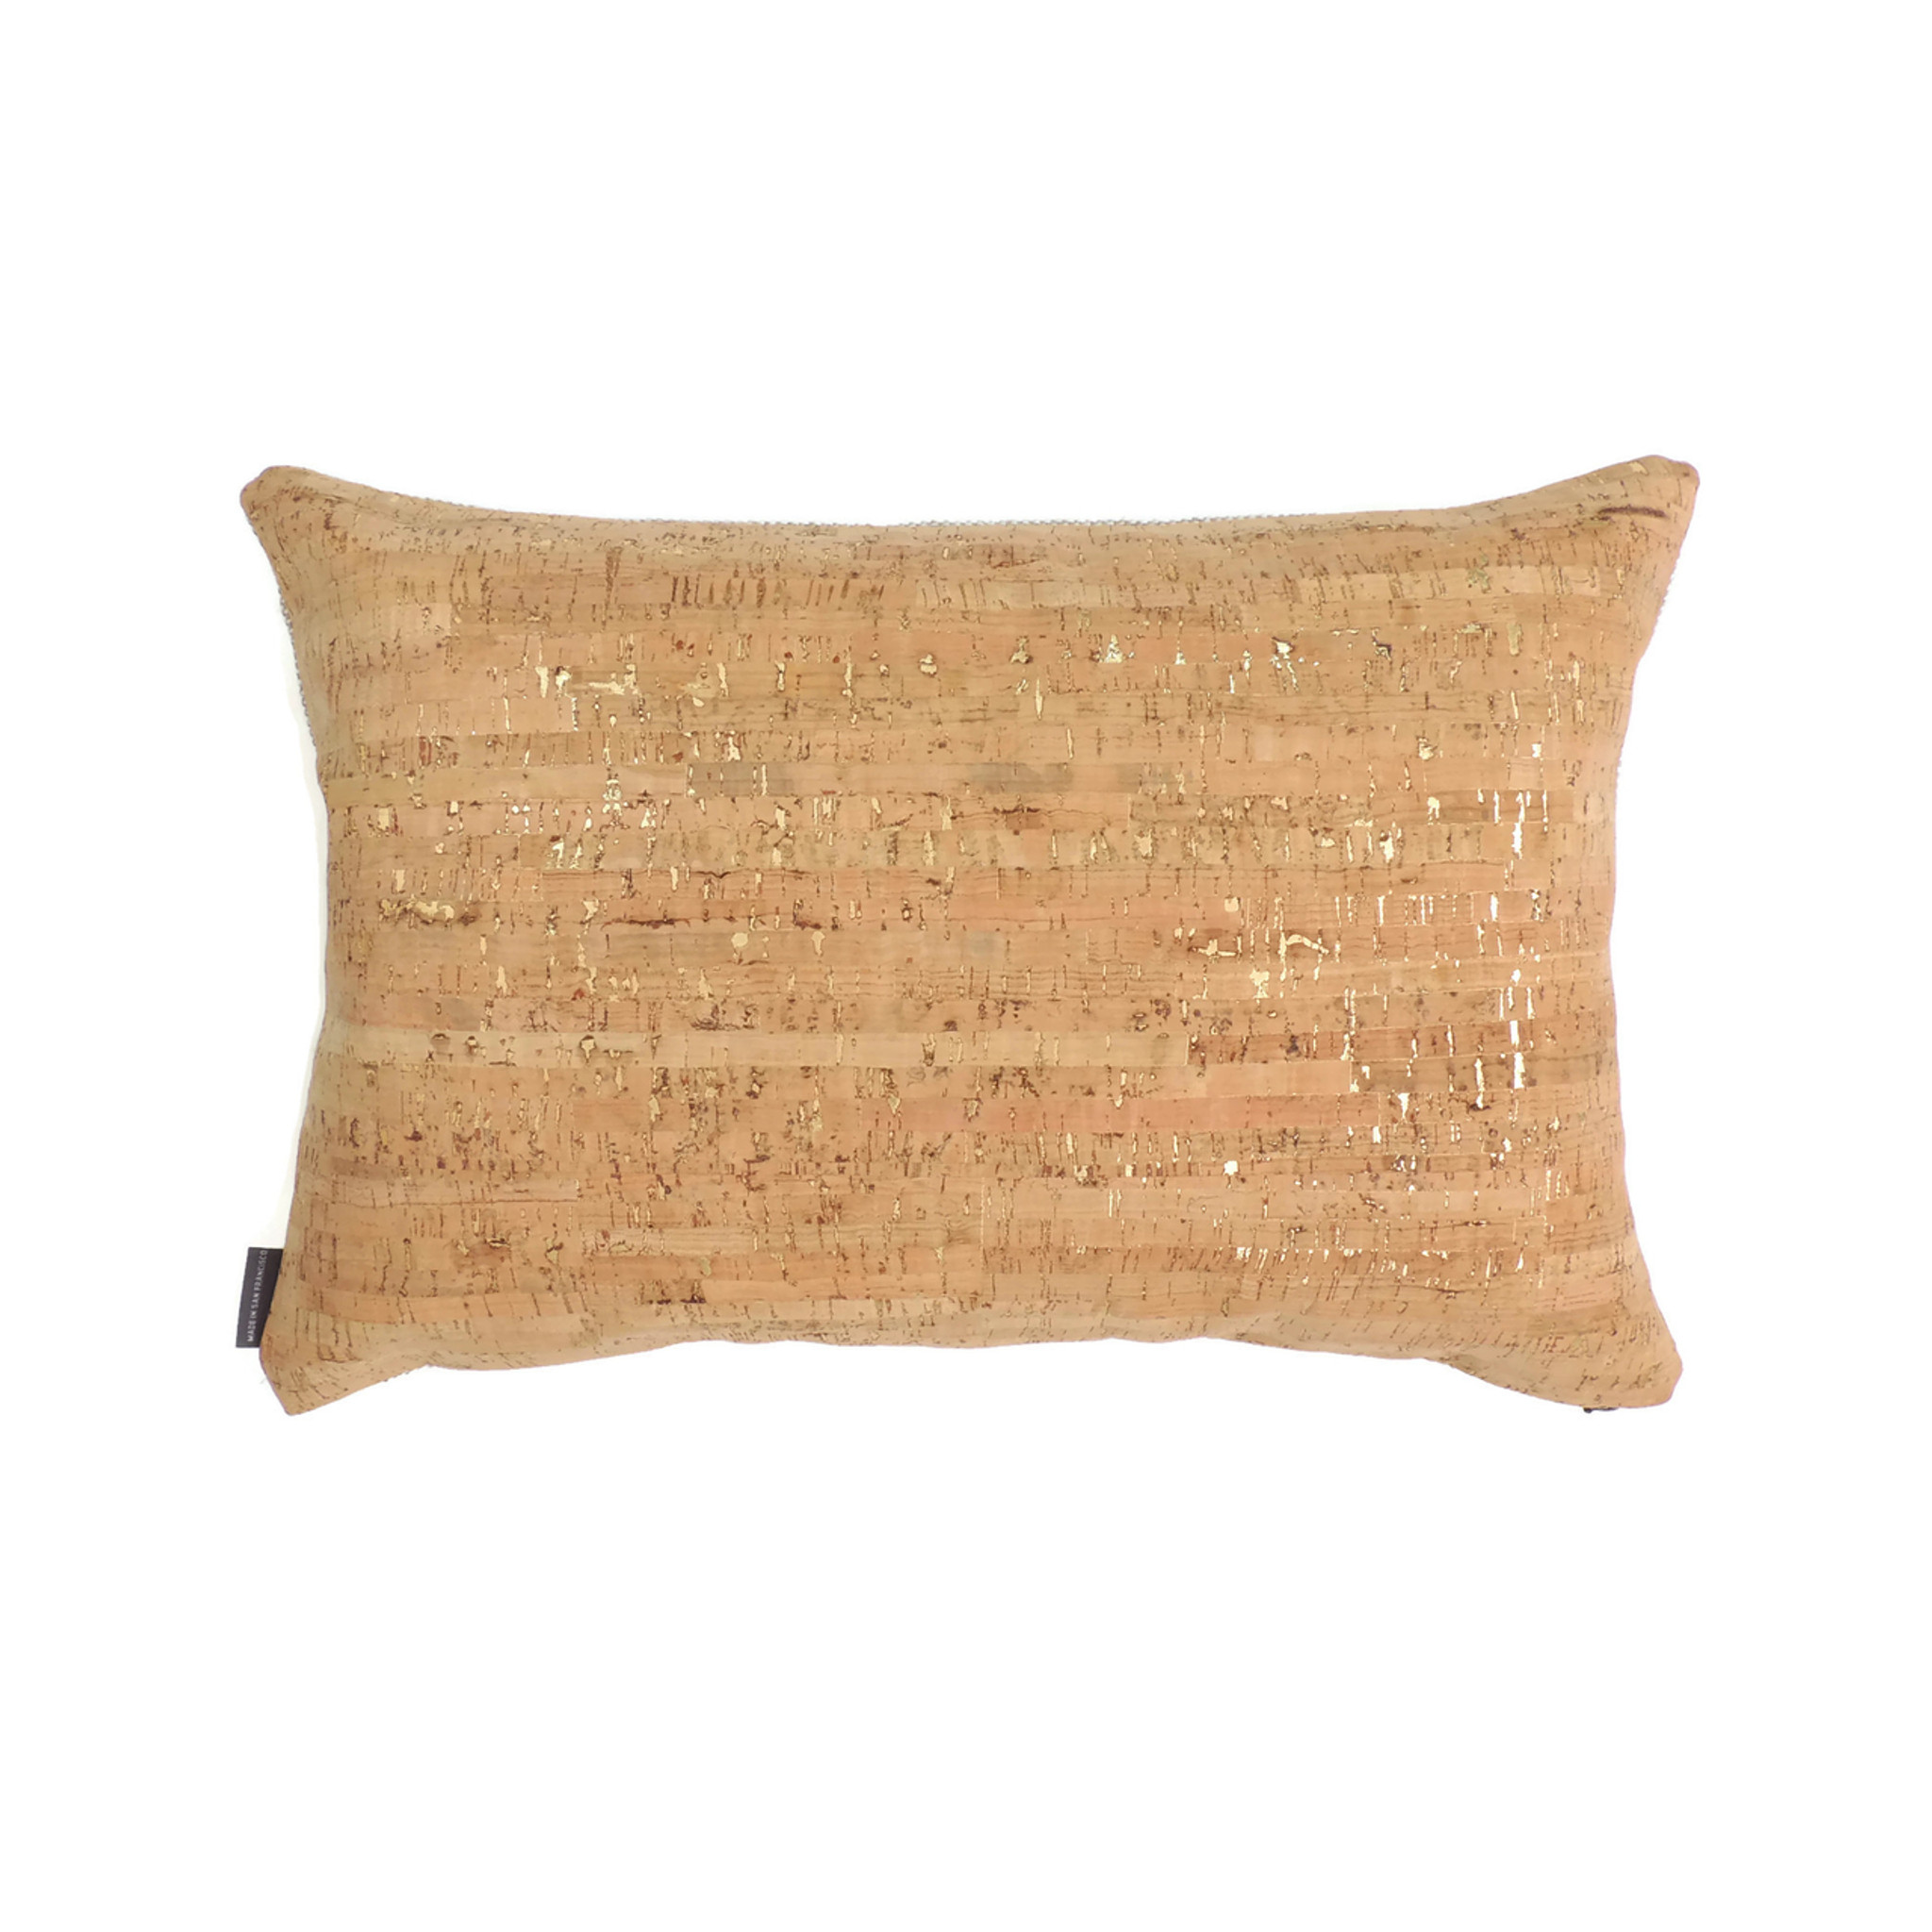 Lumbar Pillow Cover in Cork Dash Gold